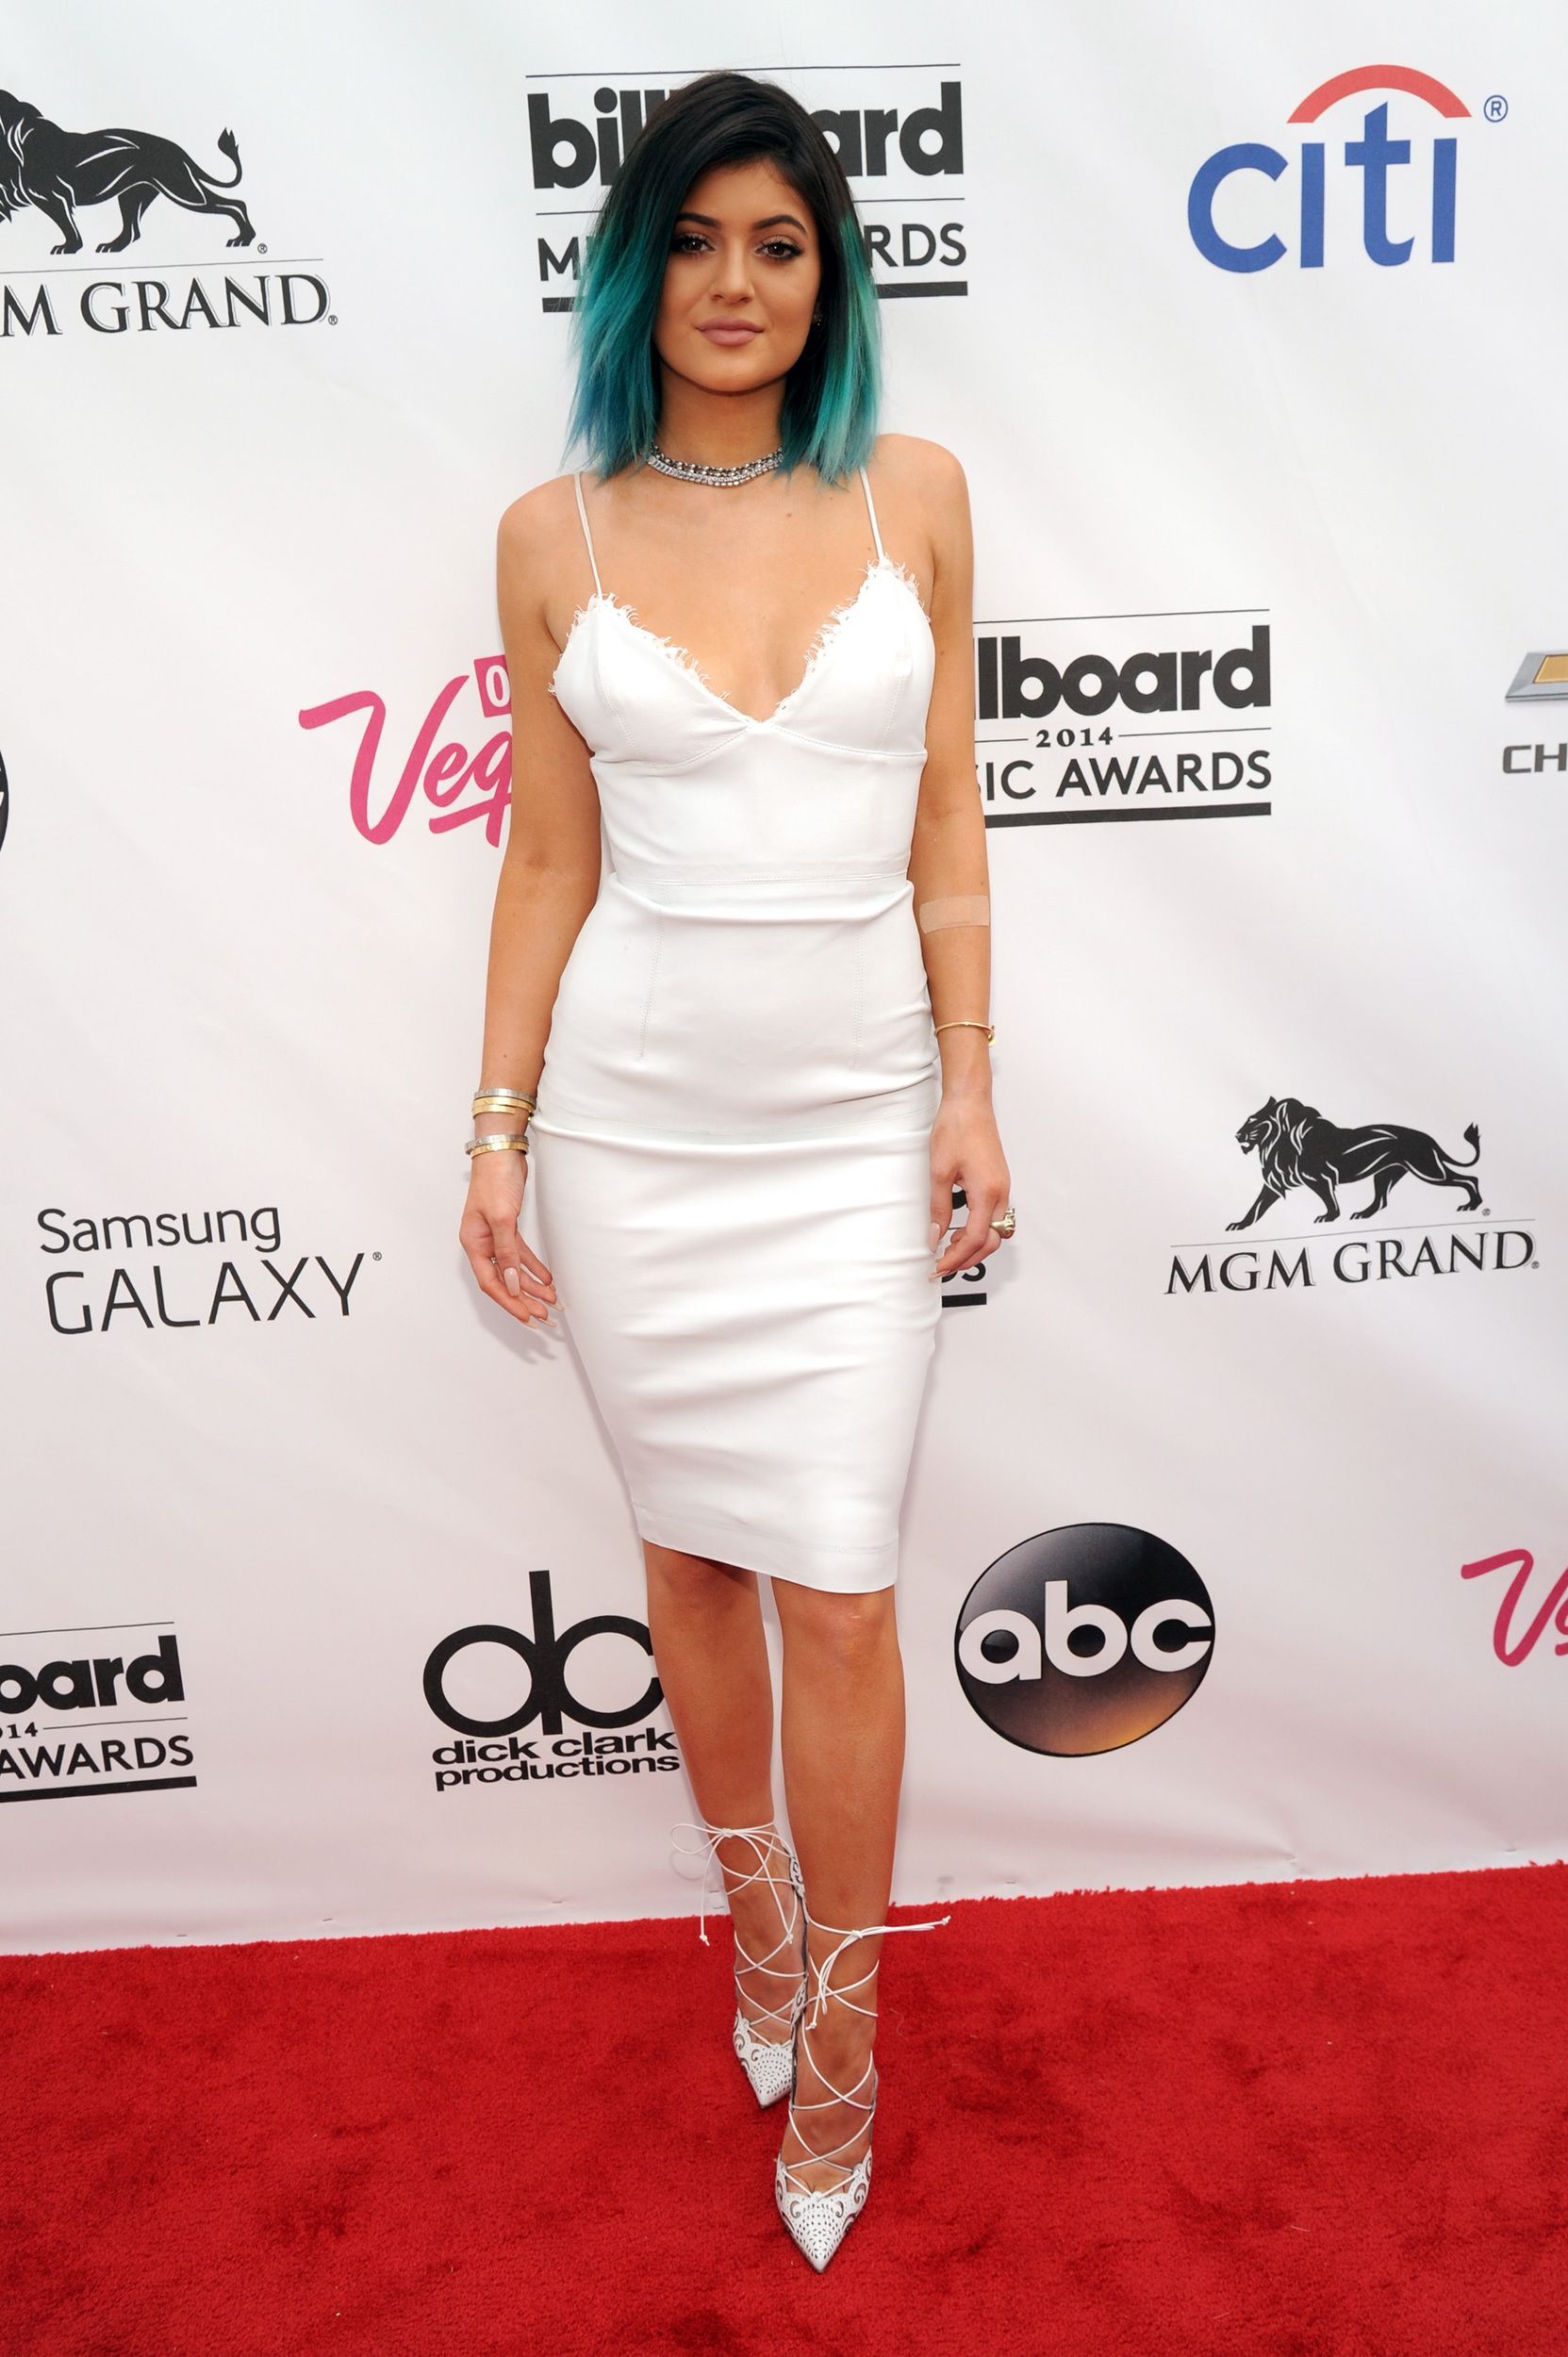 Kylie Jenner Turns Heads at 2014 Billboard Music Awards